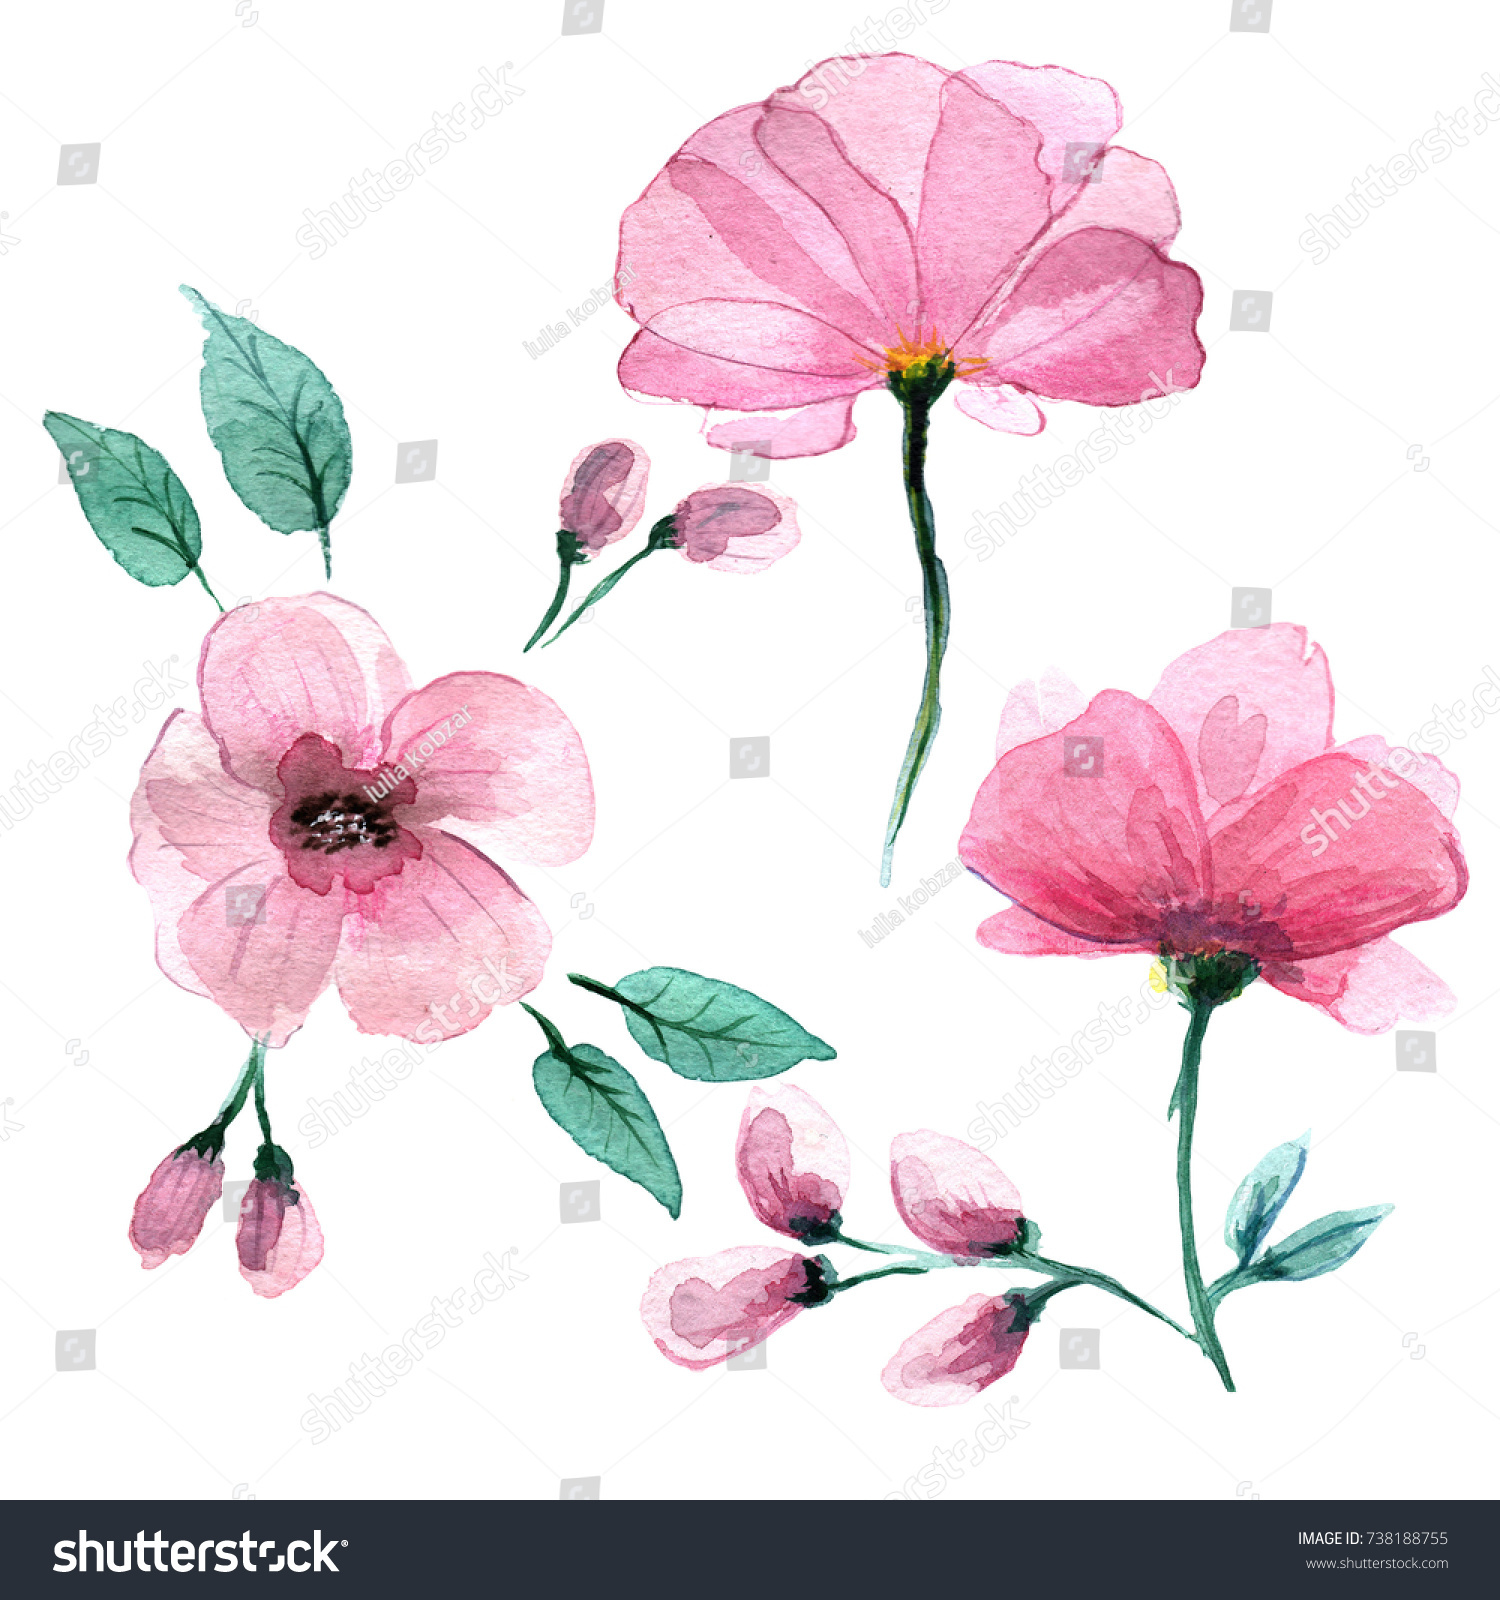 Delicate Pink Flowers Style Watercolors Stock Illustration 738188755